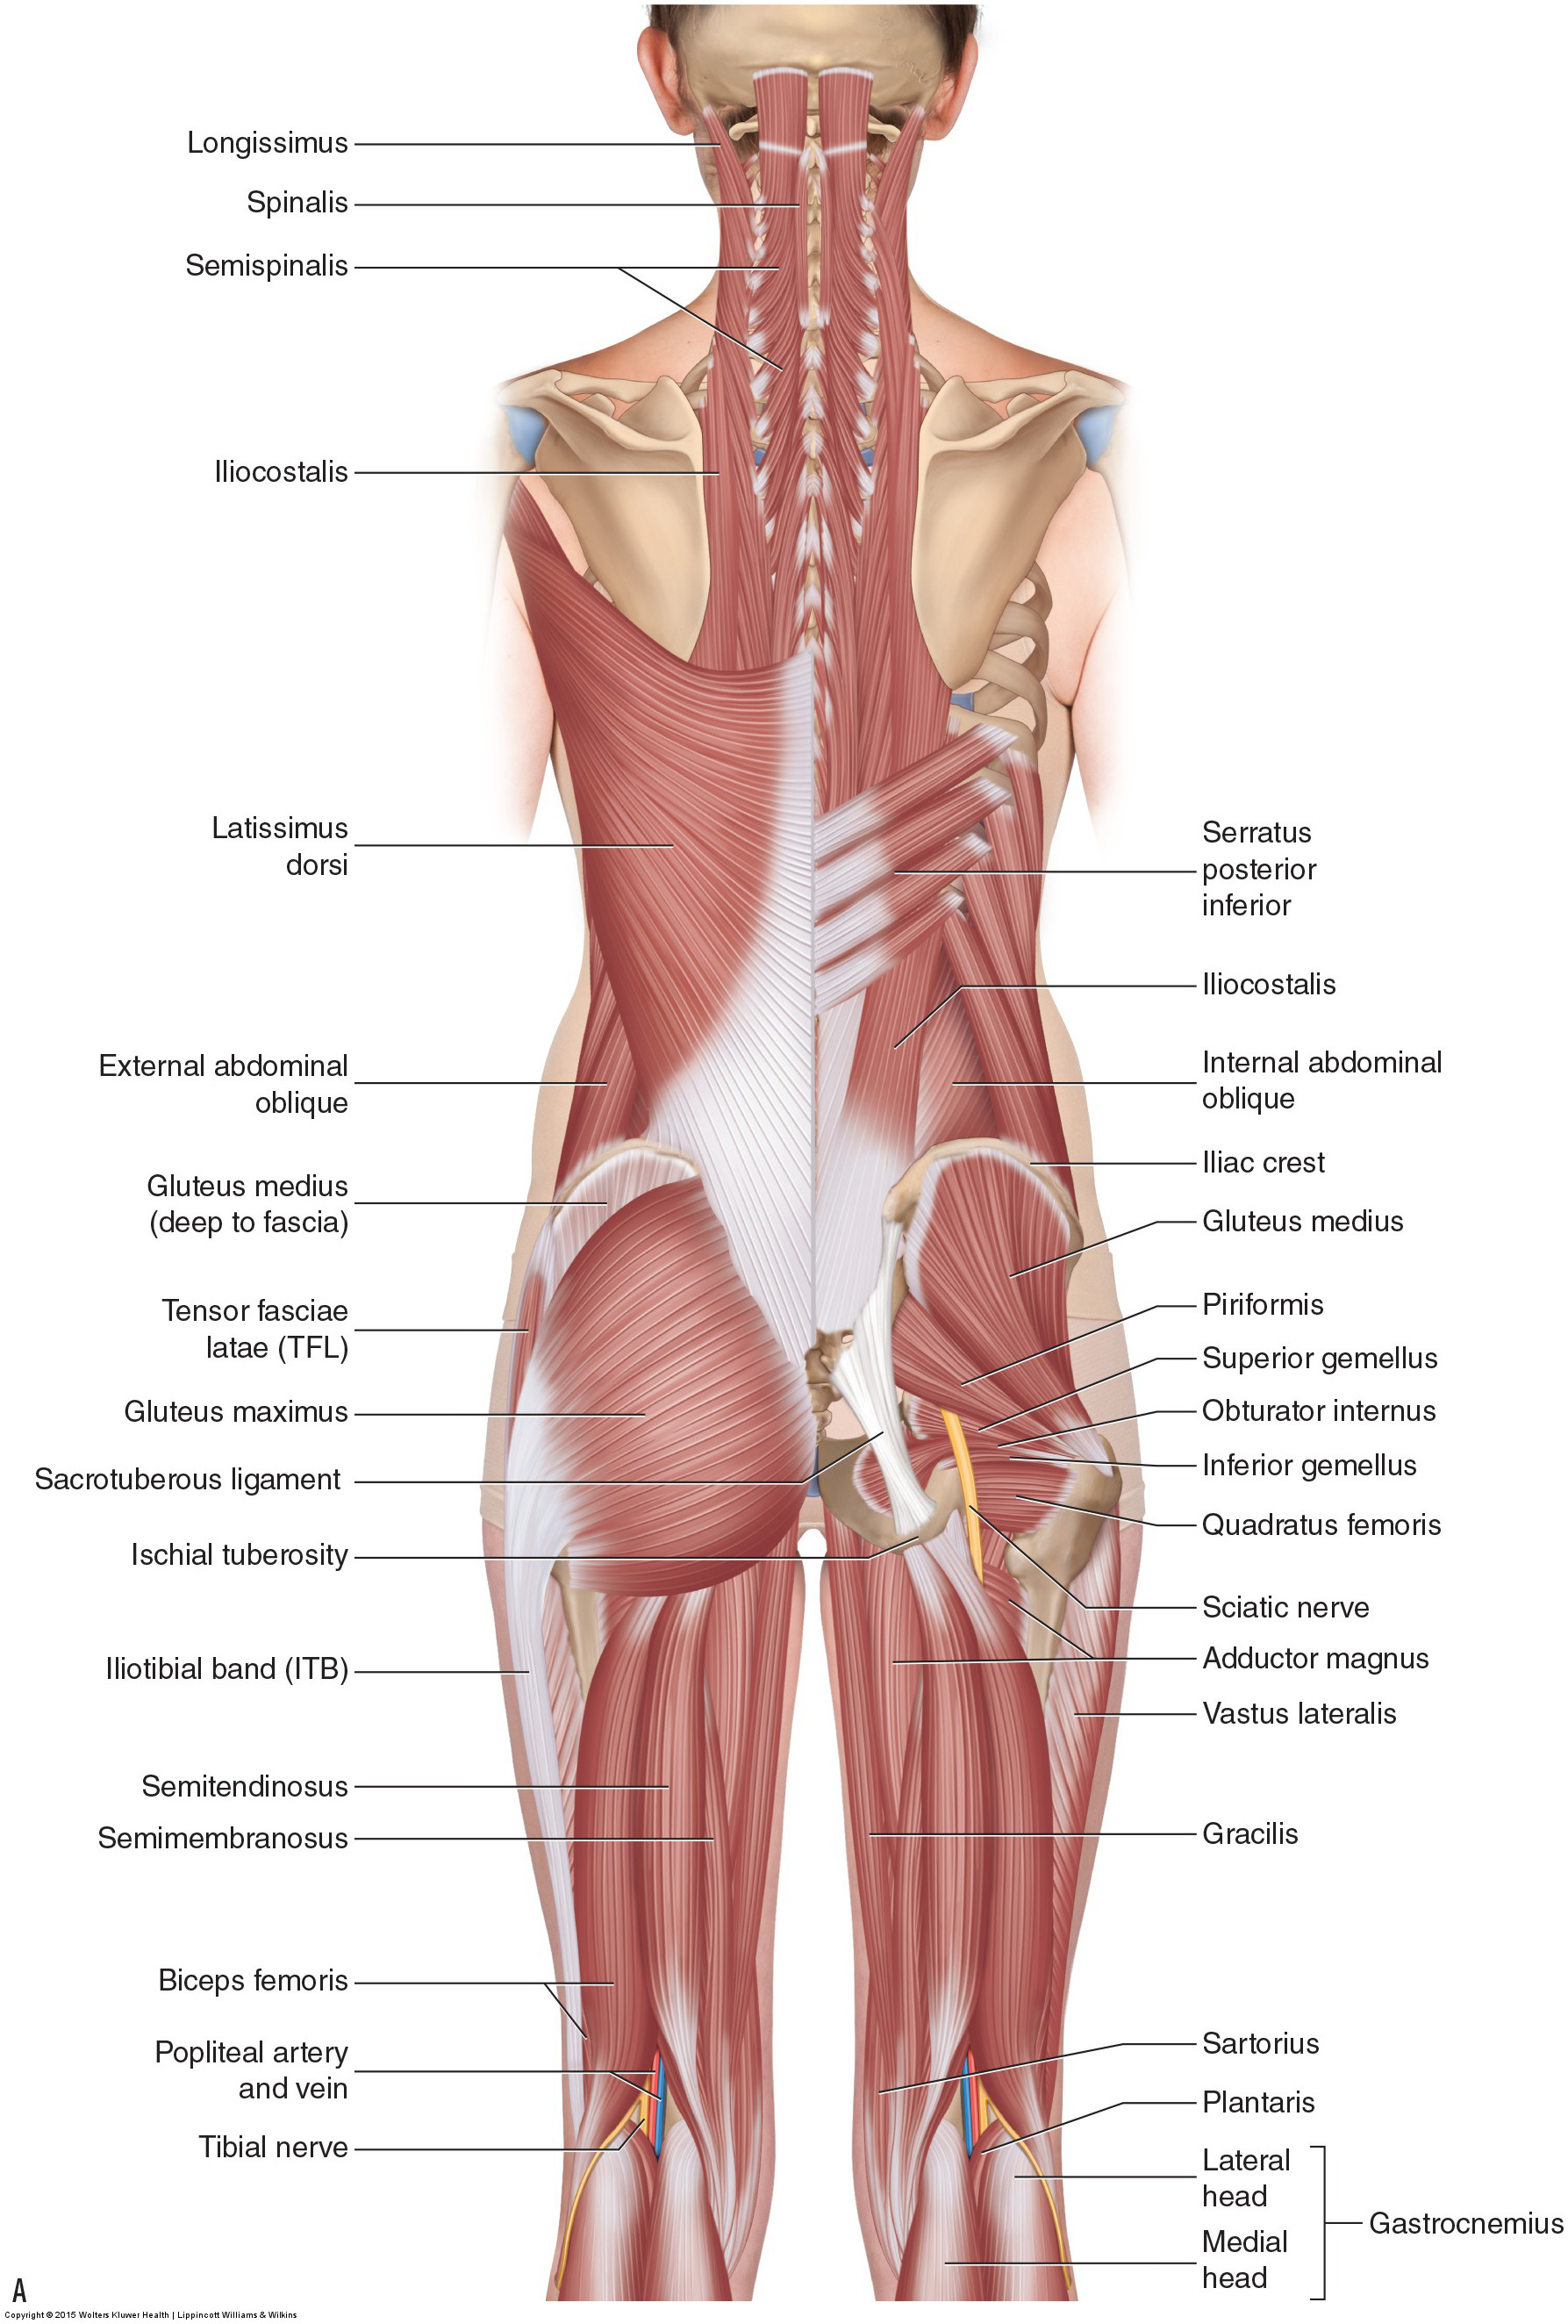 Pelvic girdle muscles anatomy